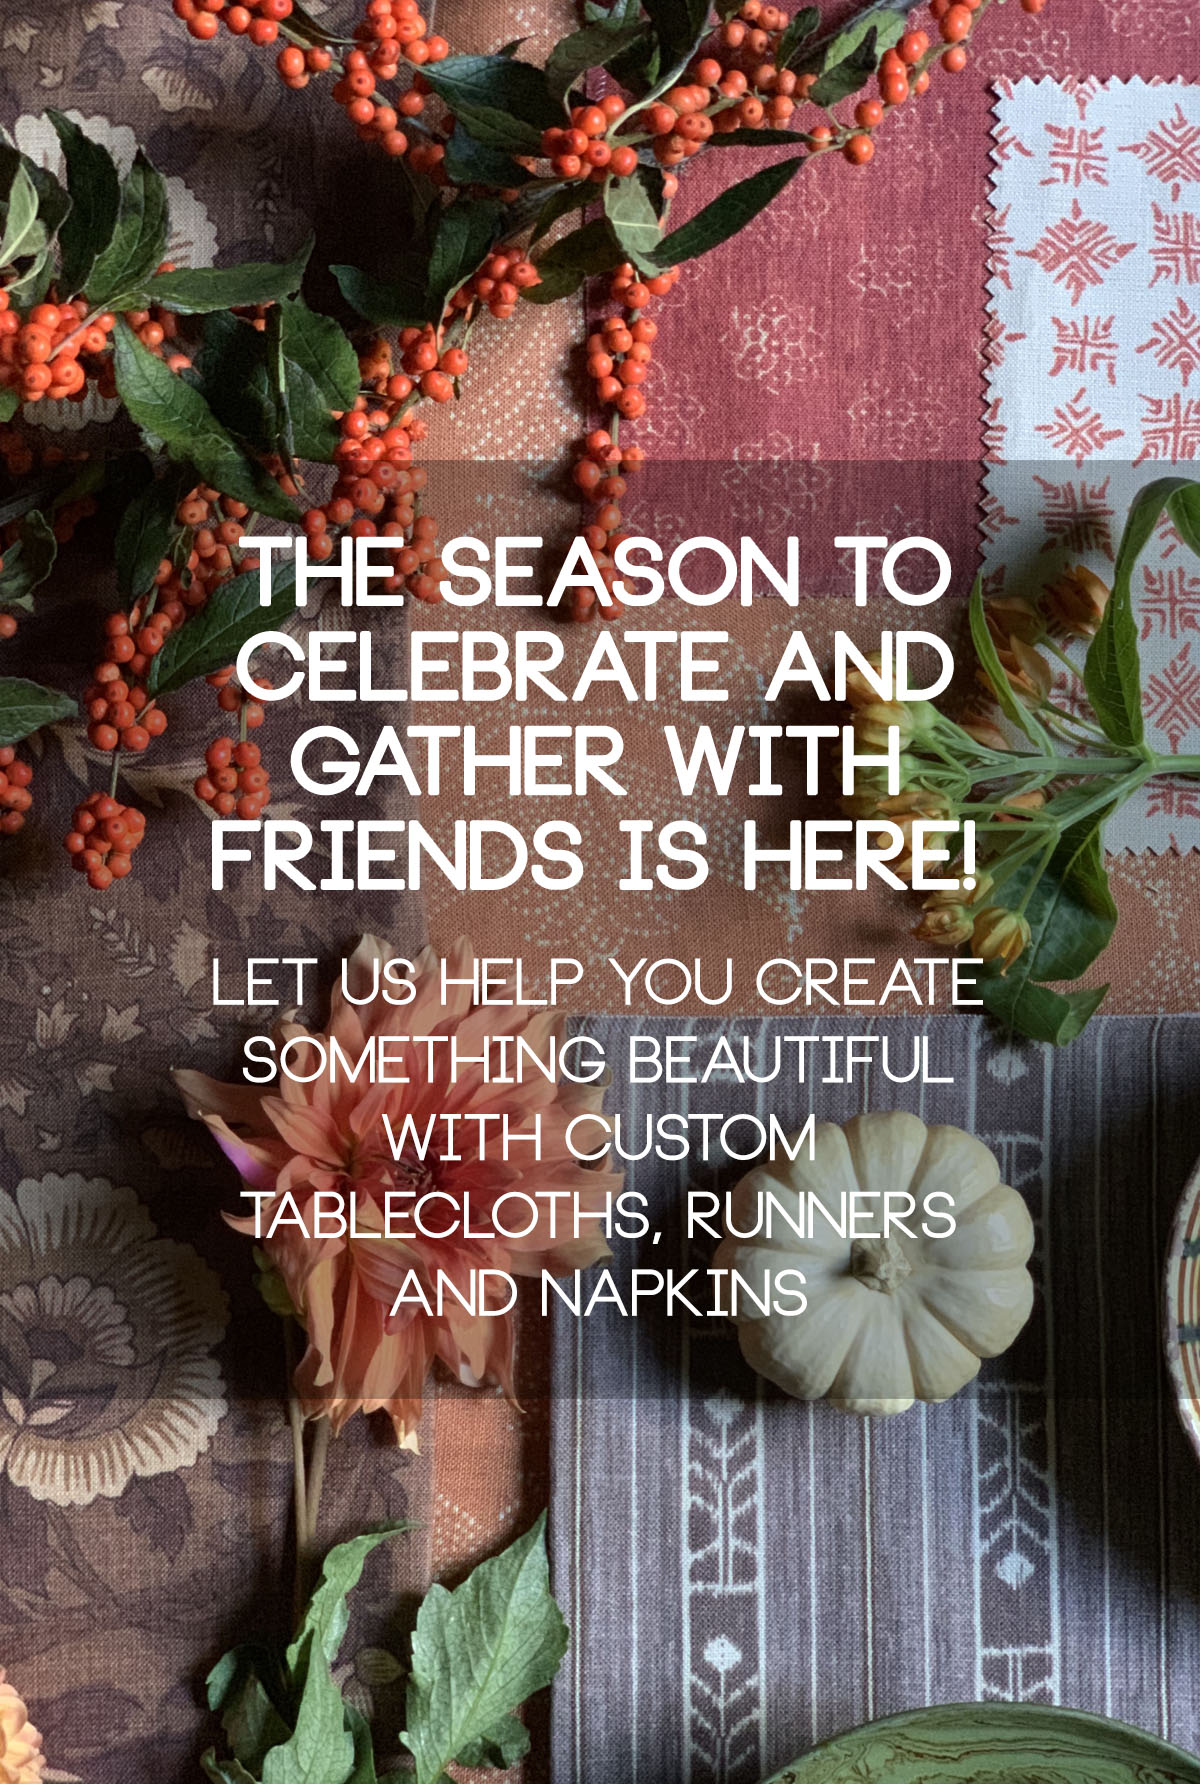 The season to celebrate and gather with friends is here! Let us help you create something beautiful with custom tablecloths, runners and napkins.